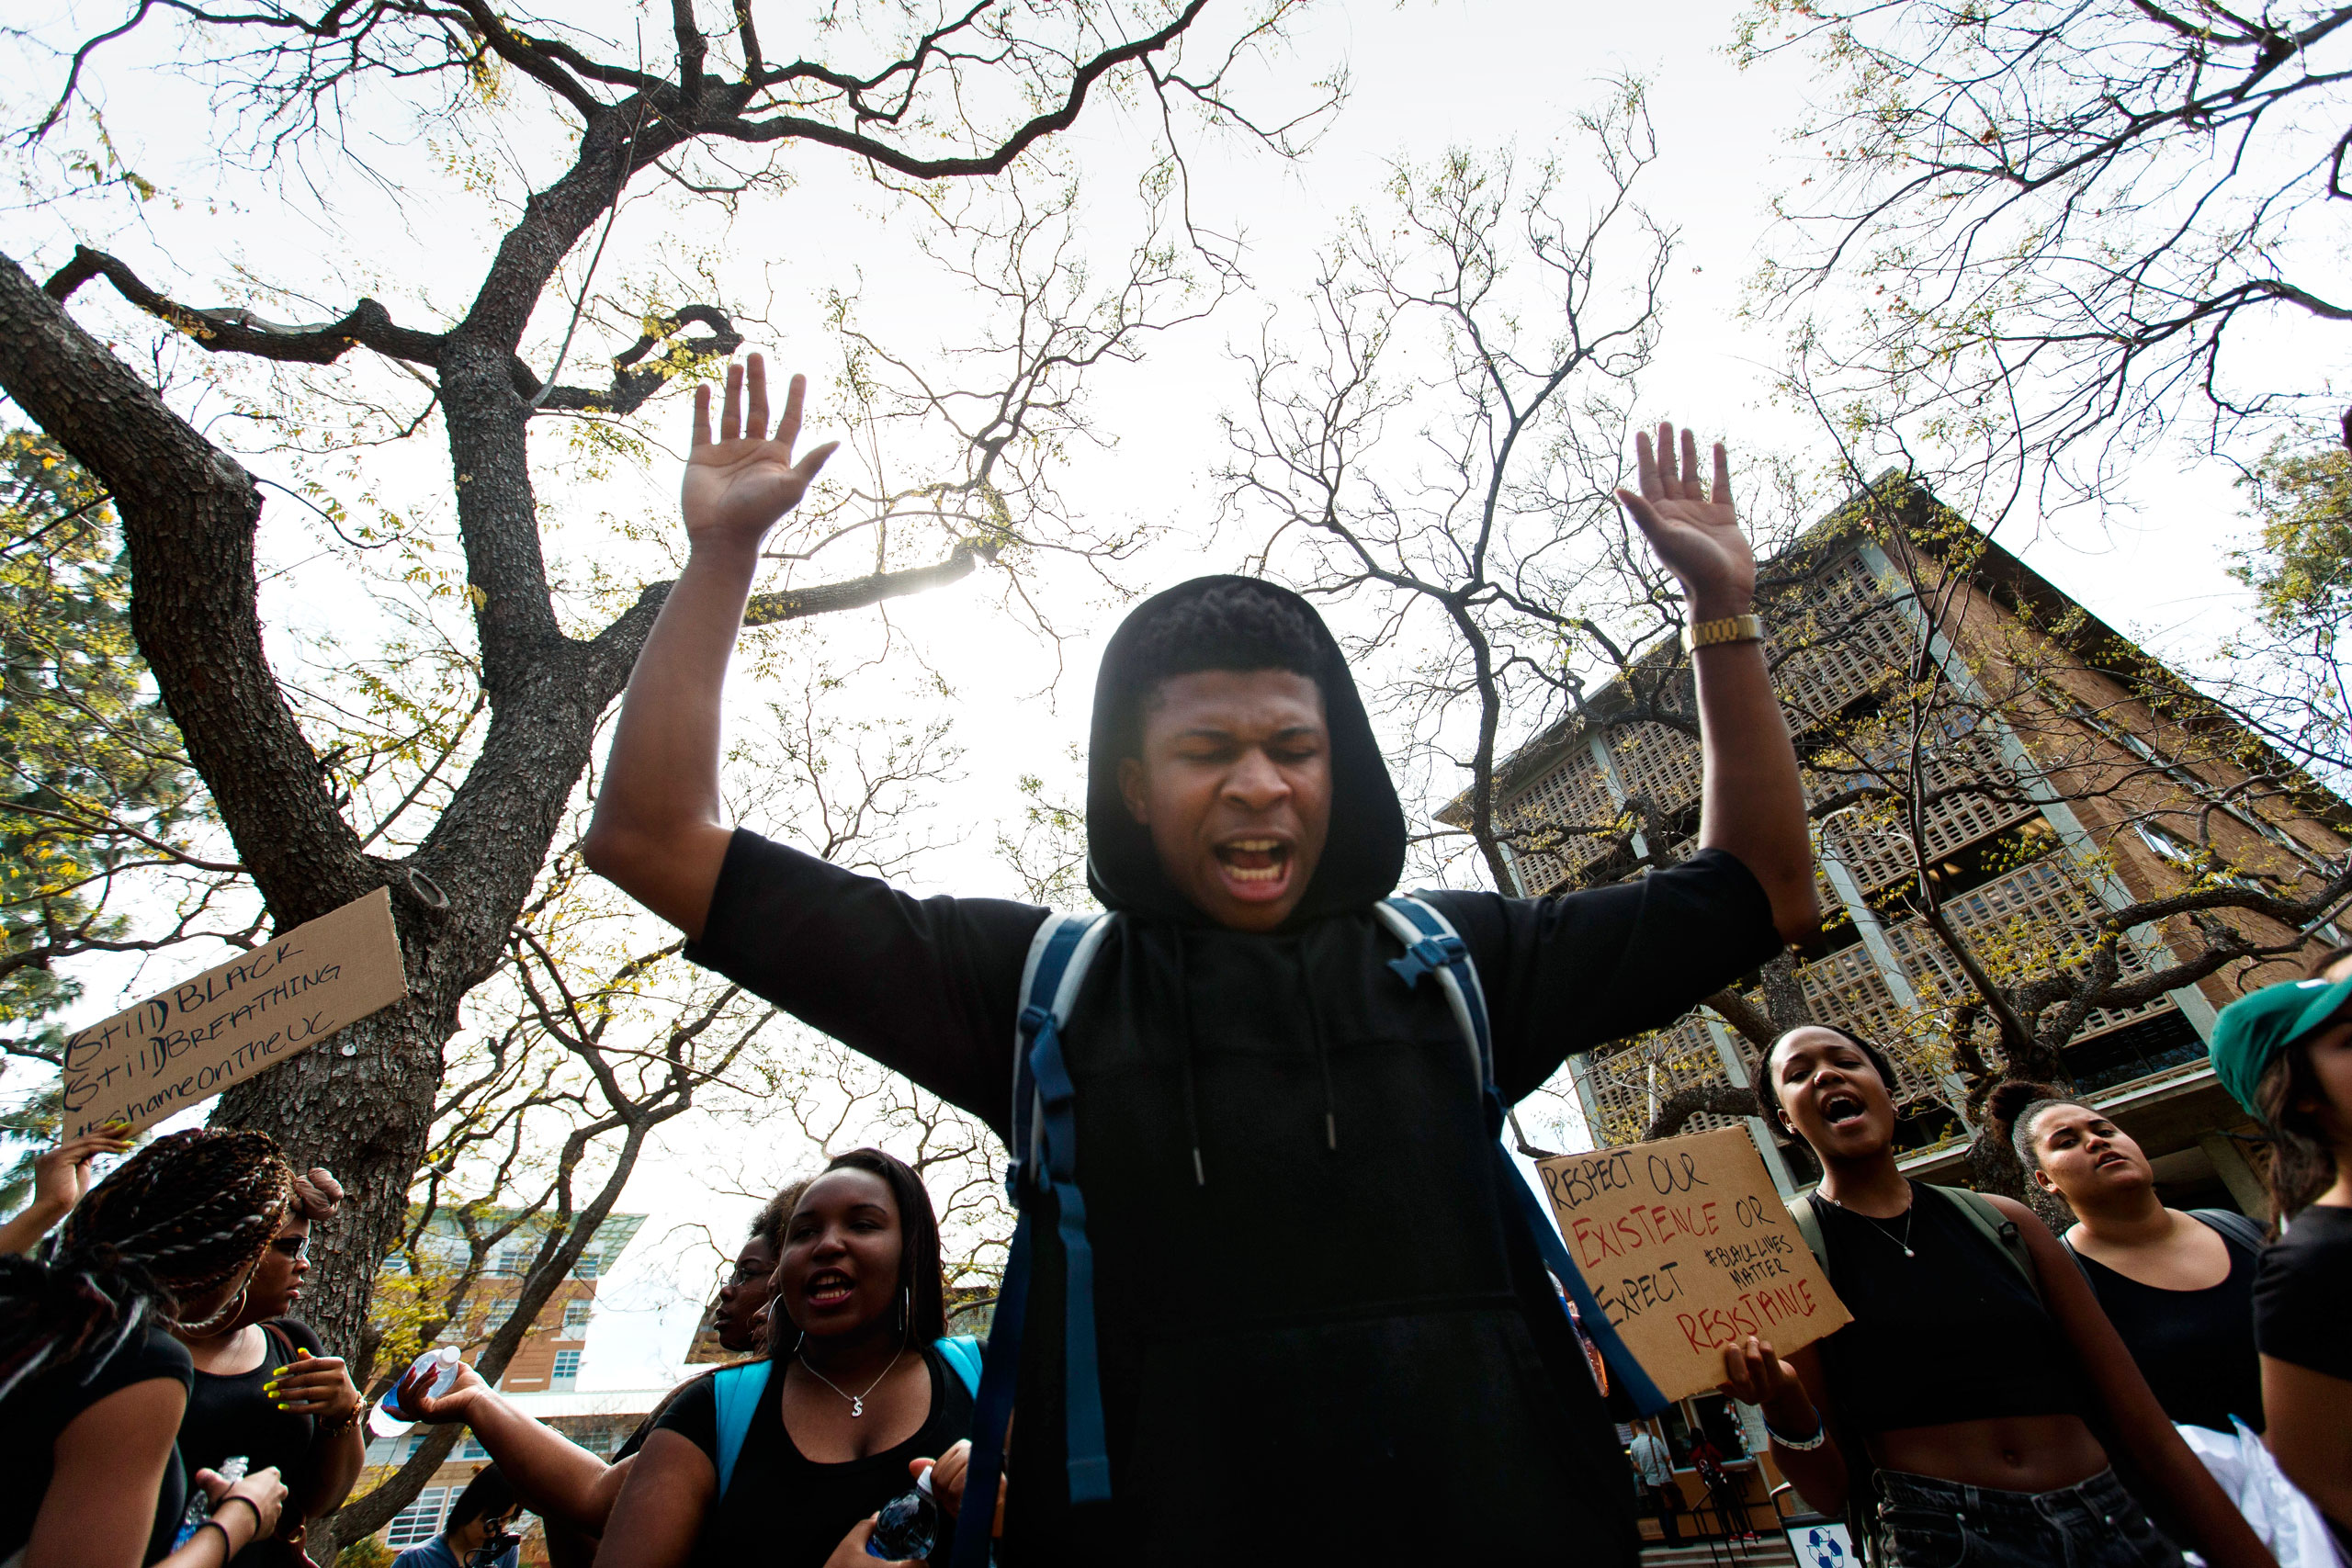 The Feb.29 Black Student Union protest at UC Riverside was one of hundreds at U.S. colleges this year